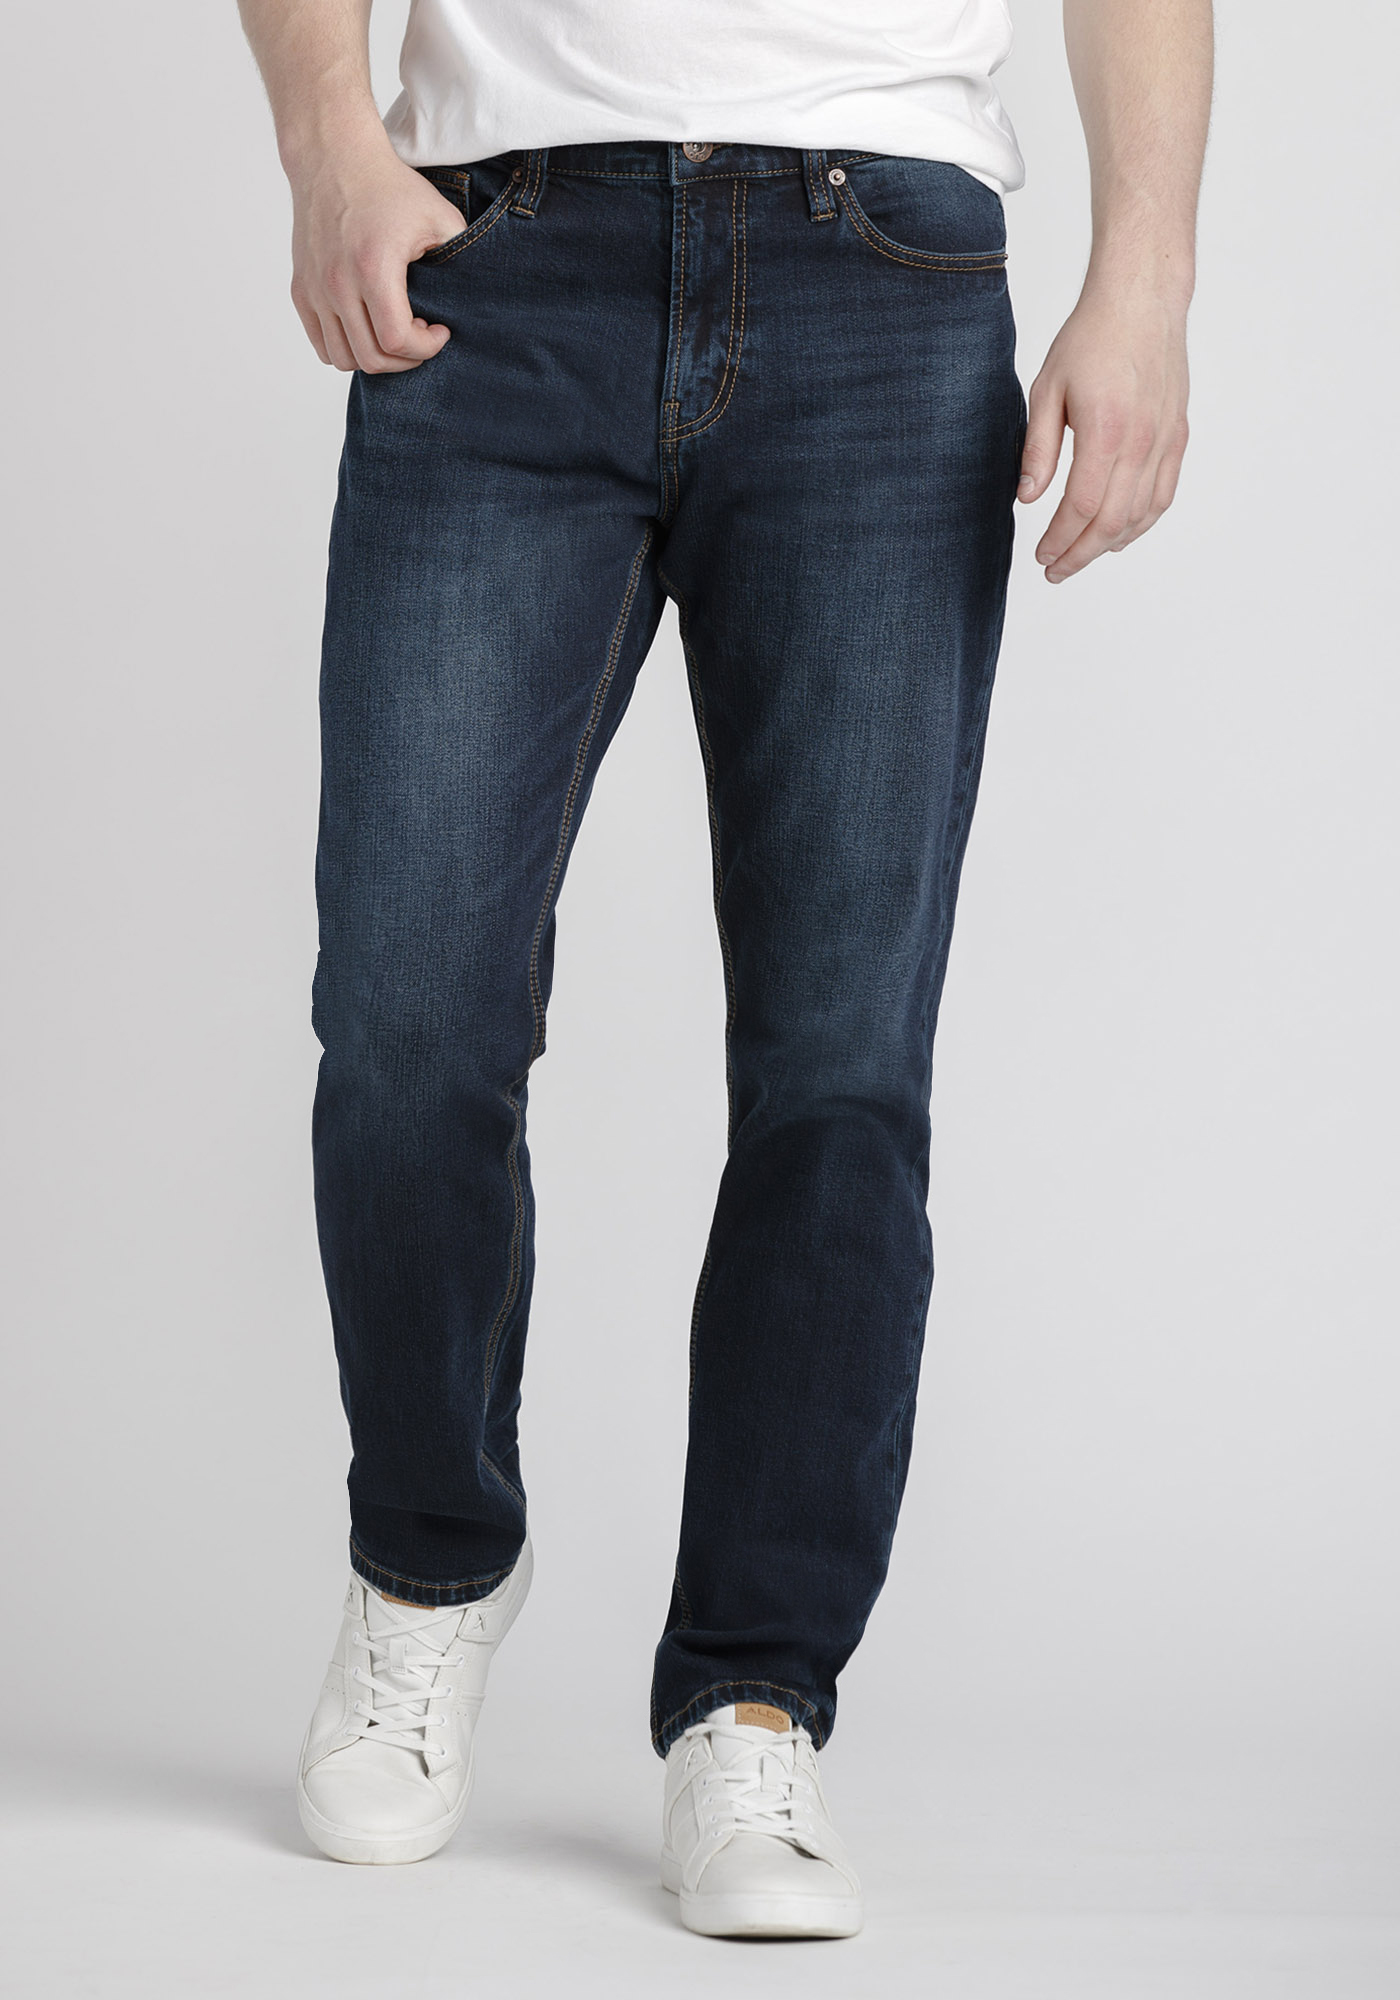 Men's Dark Wash Athletic Jeans, DARK WASH, hi-res